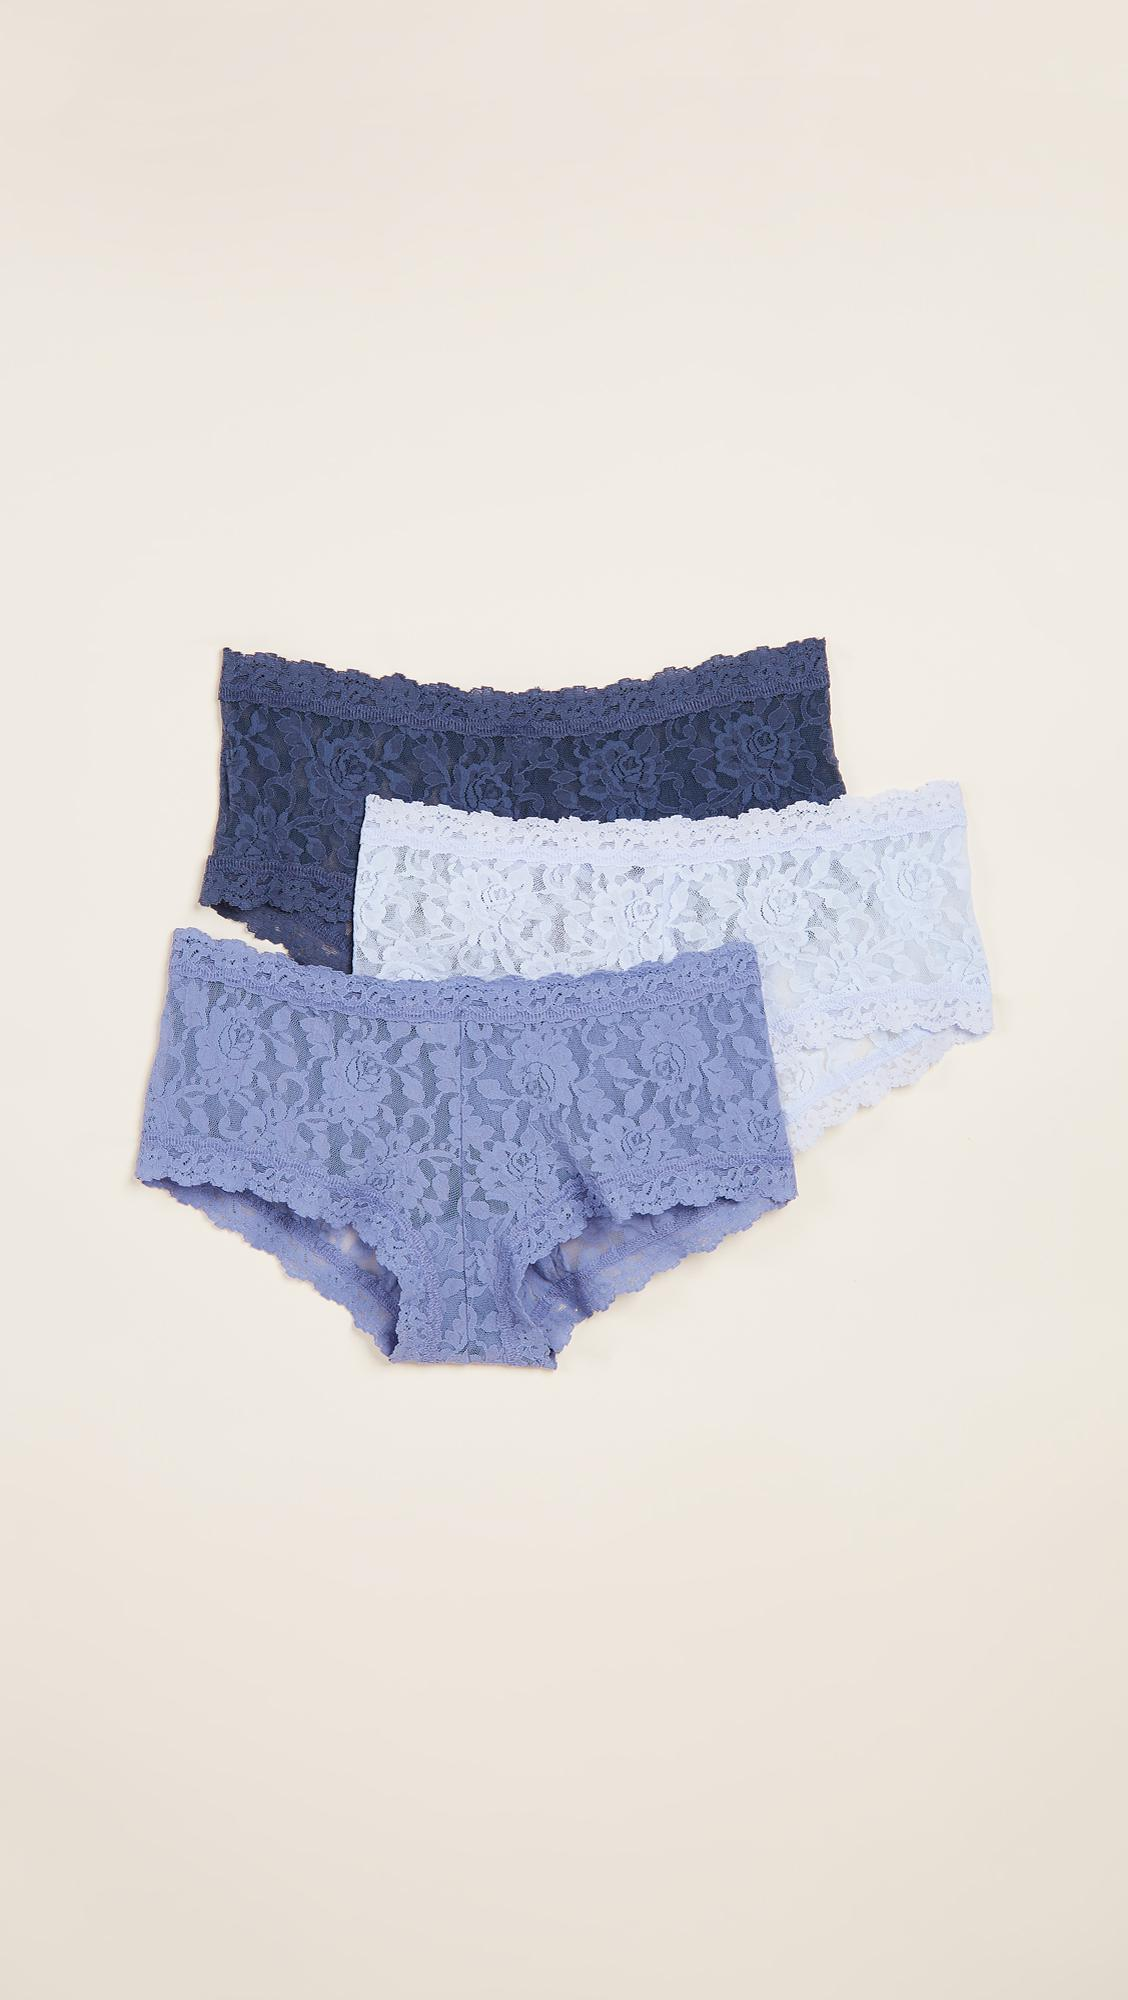 92fd1624a78 Lyst - Hanky Panky 3 Pack Signature Lace Something Blue Boy Shorts ...